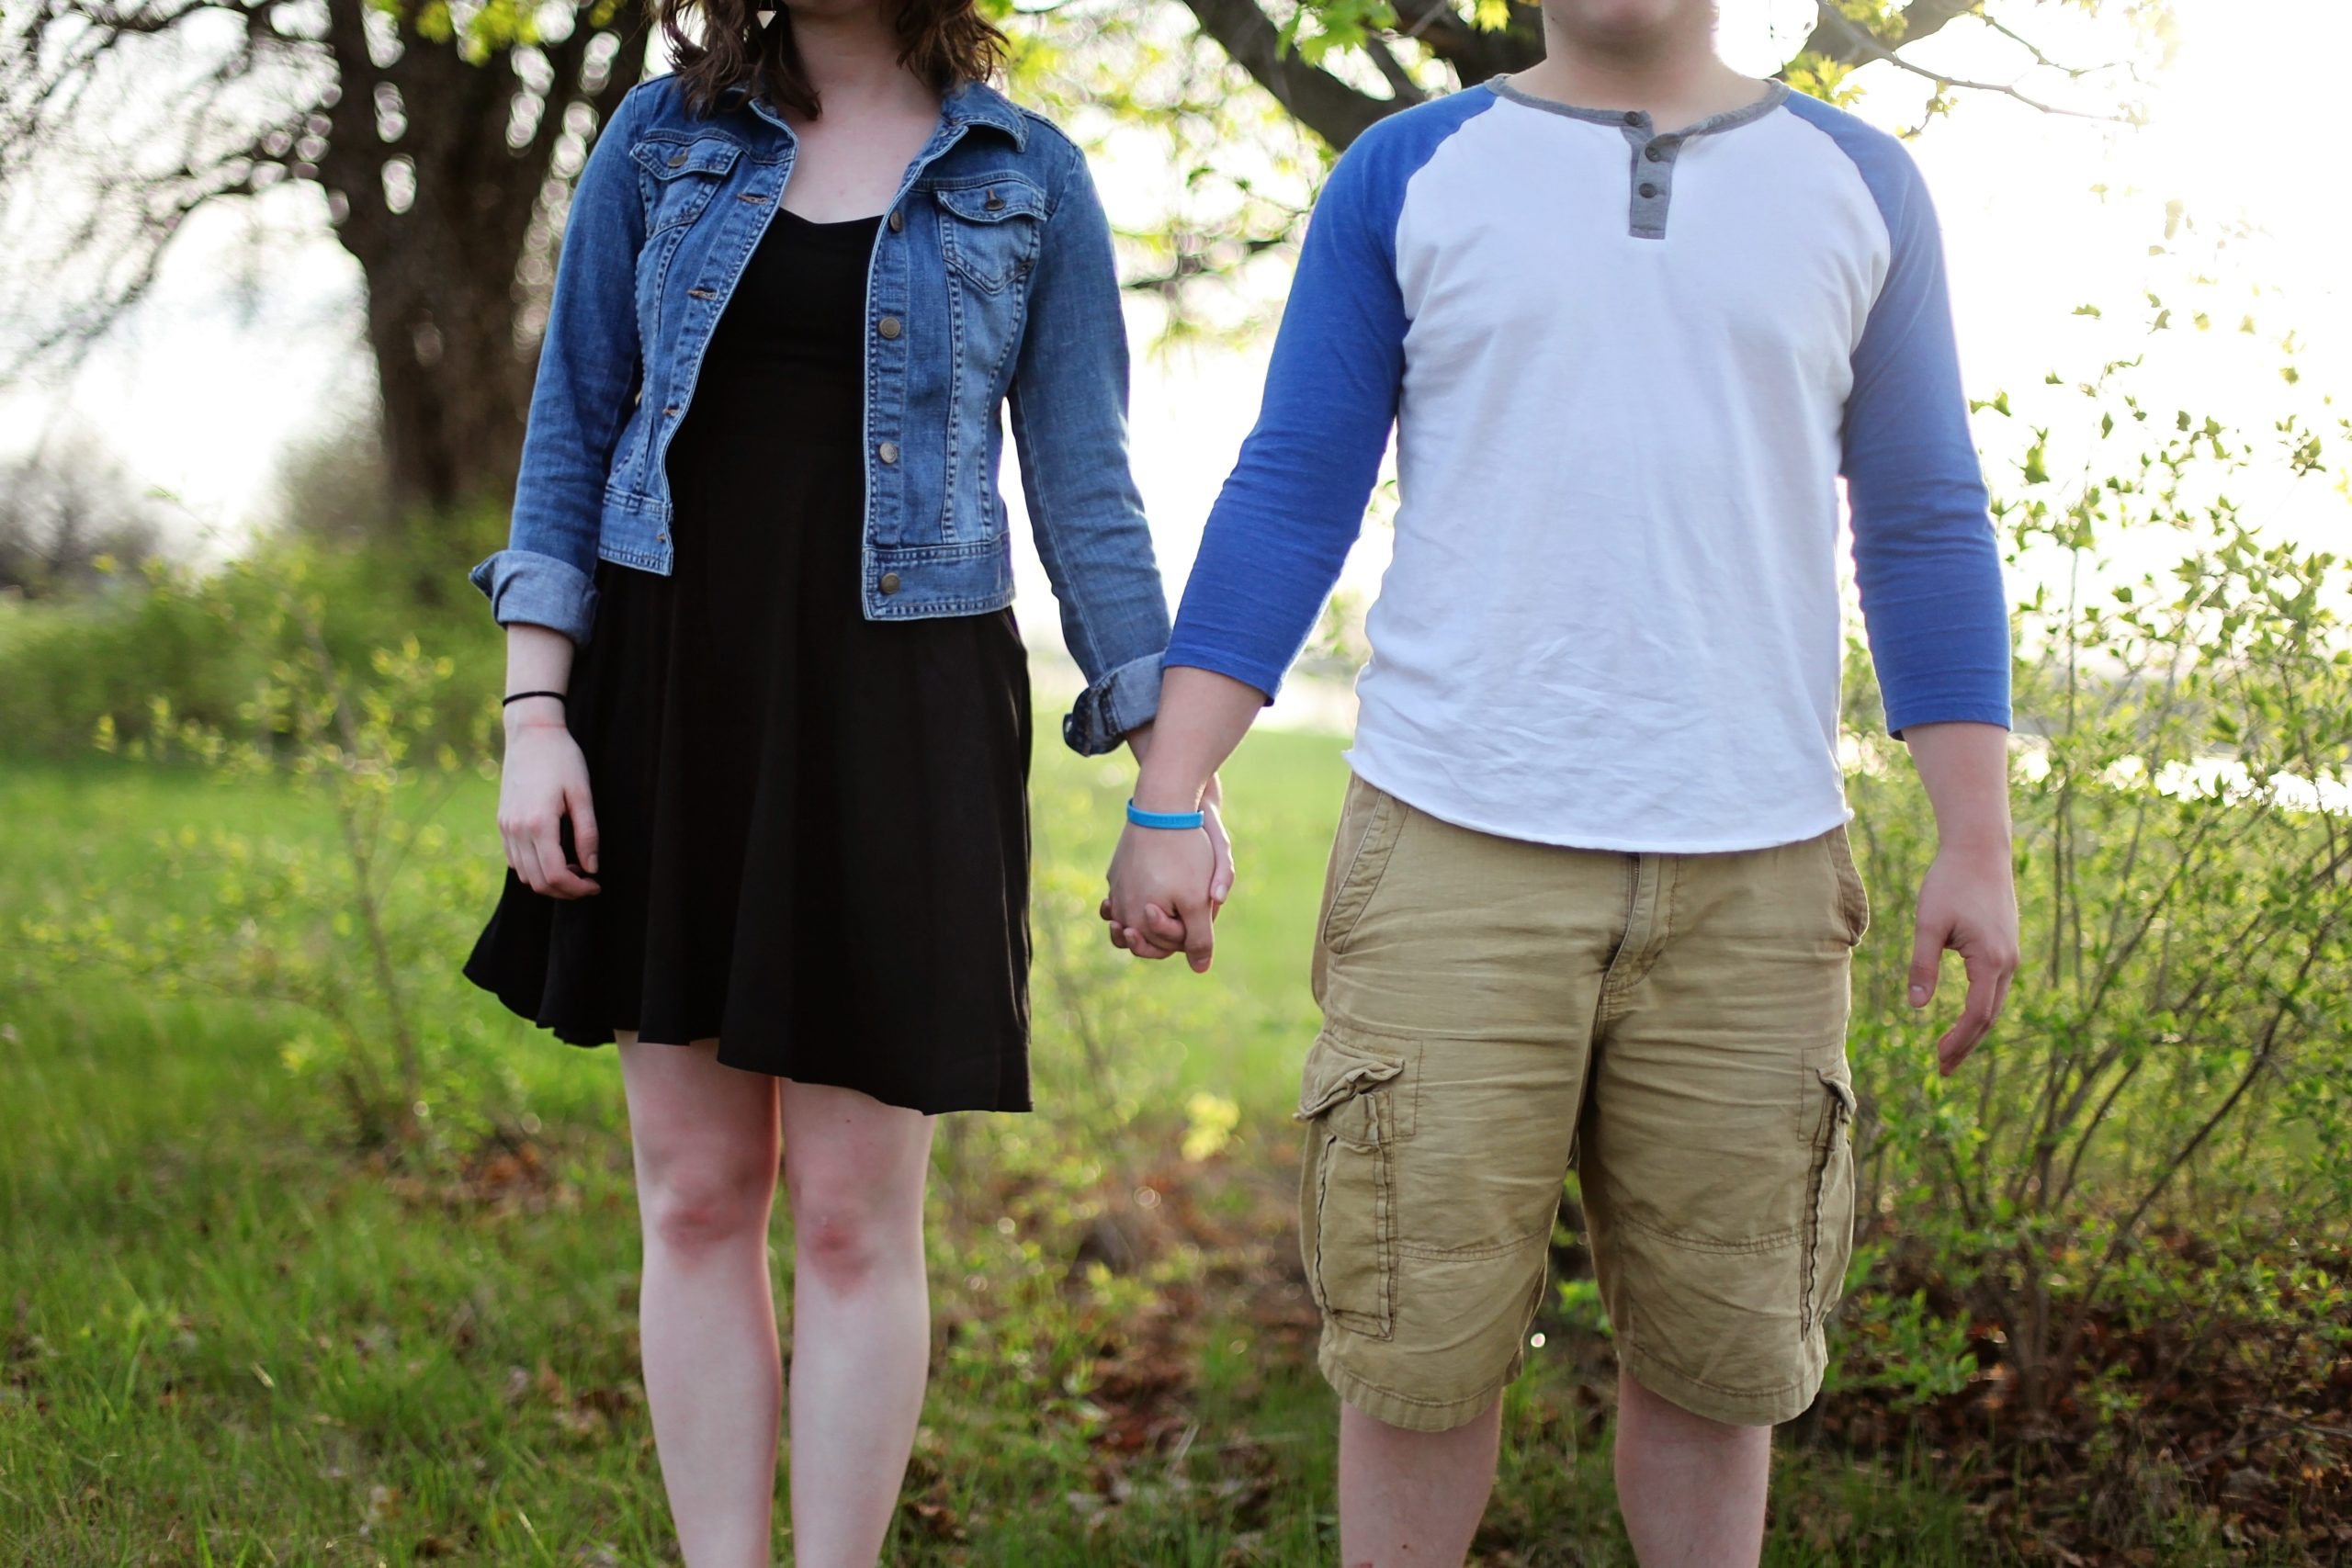 Couple holding hands in grassy field